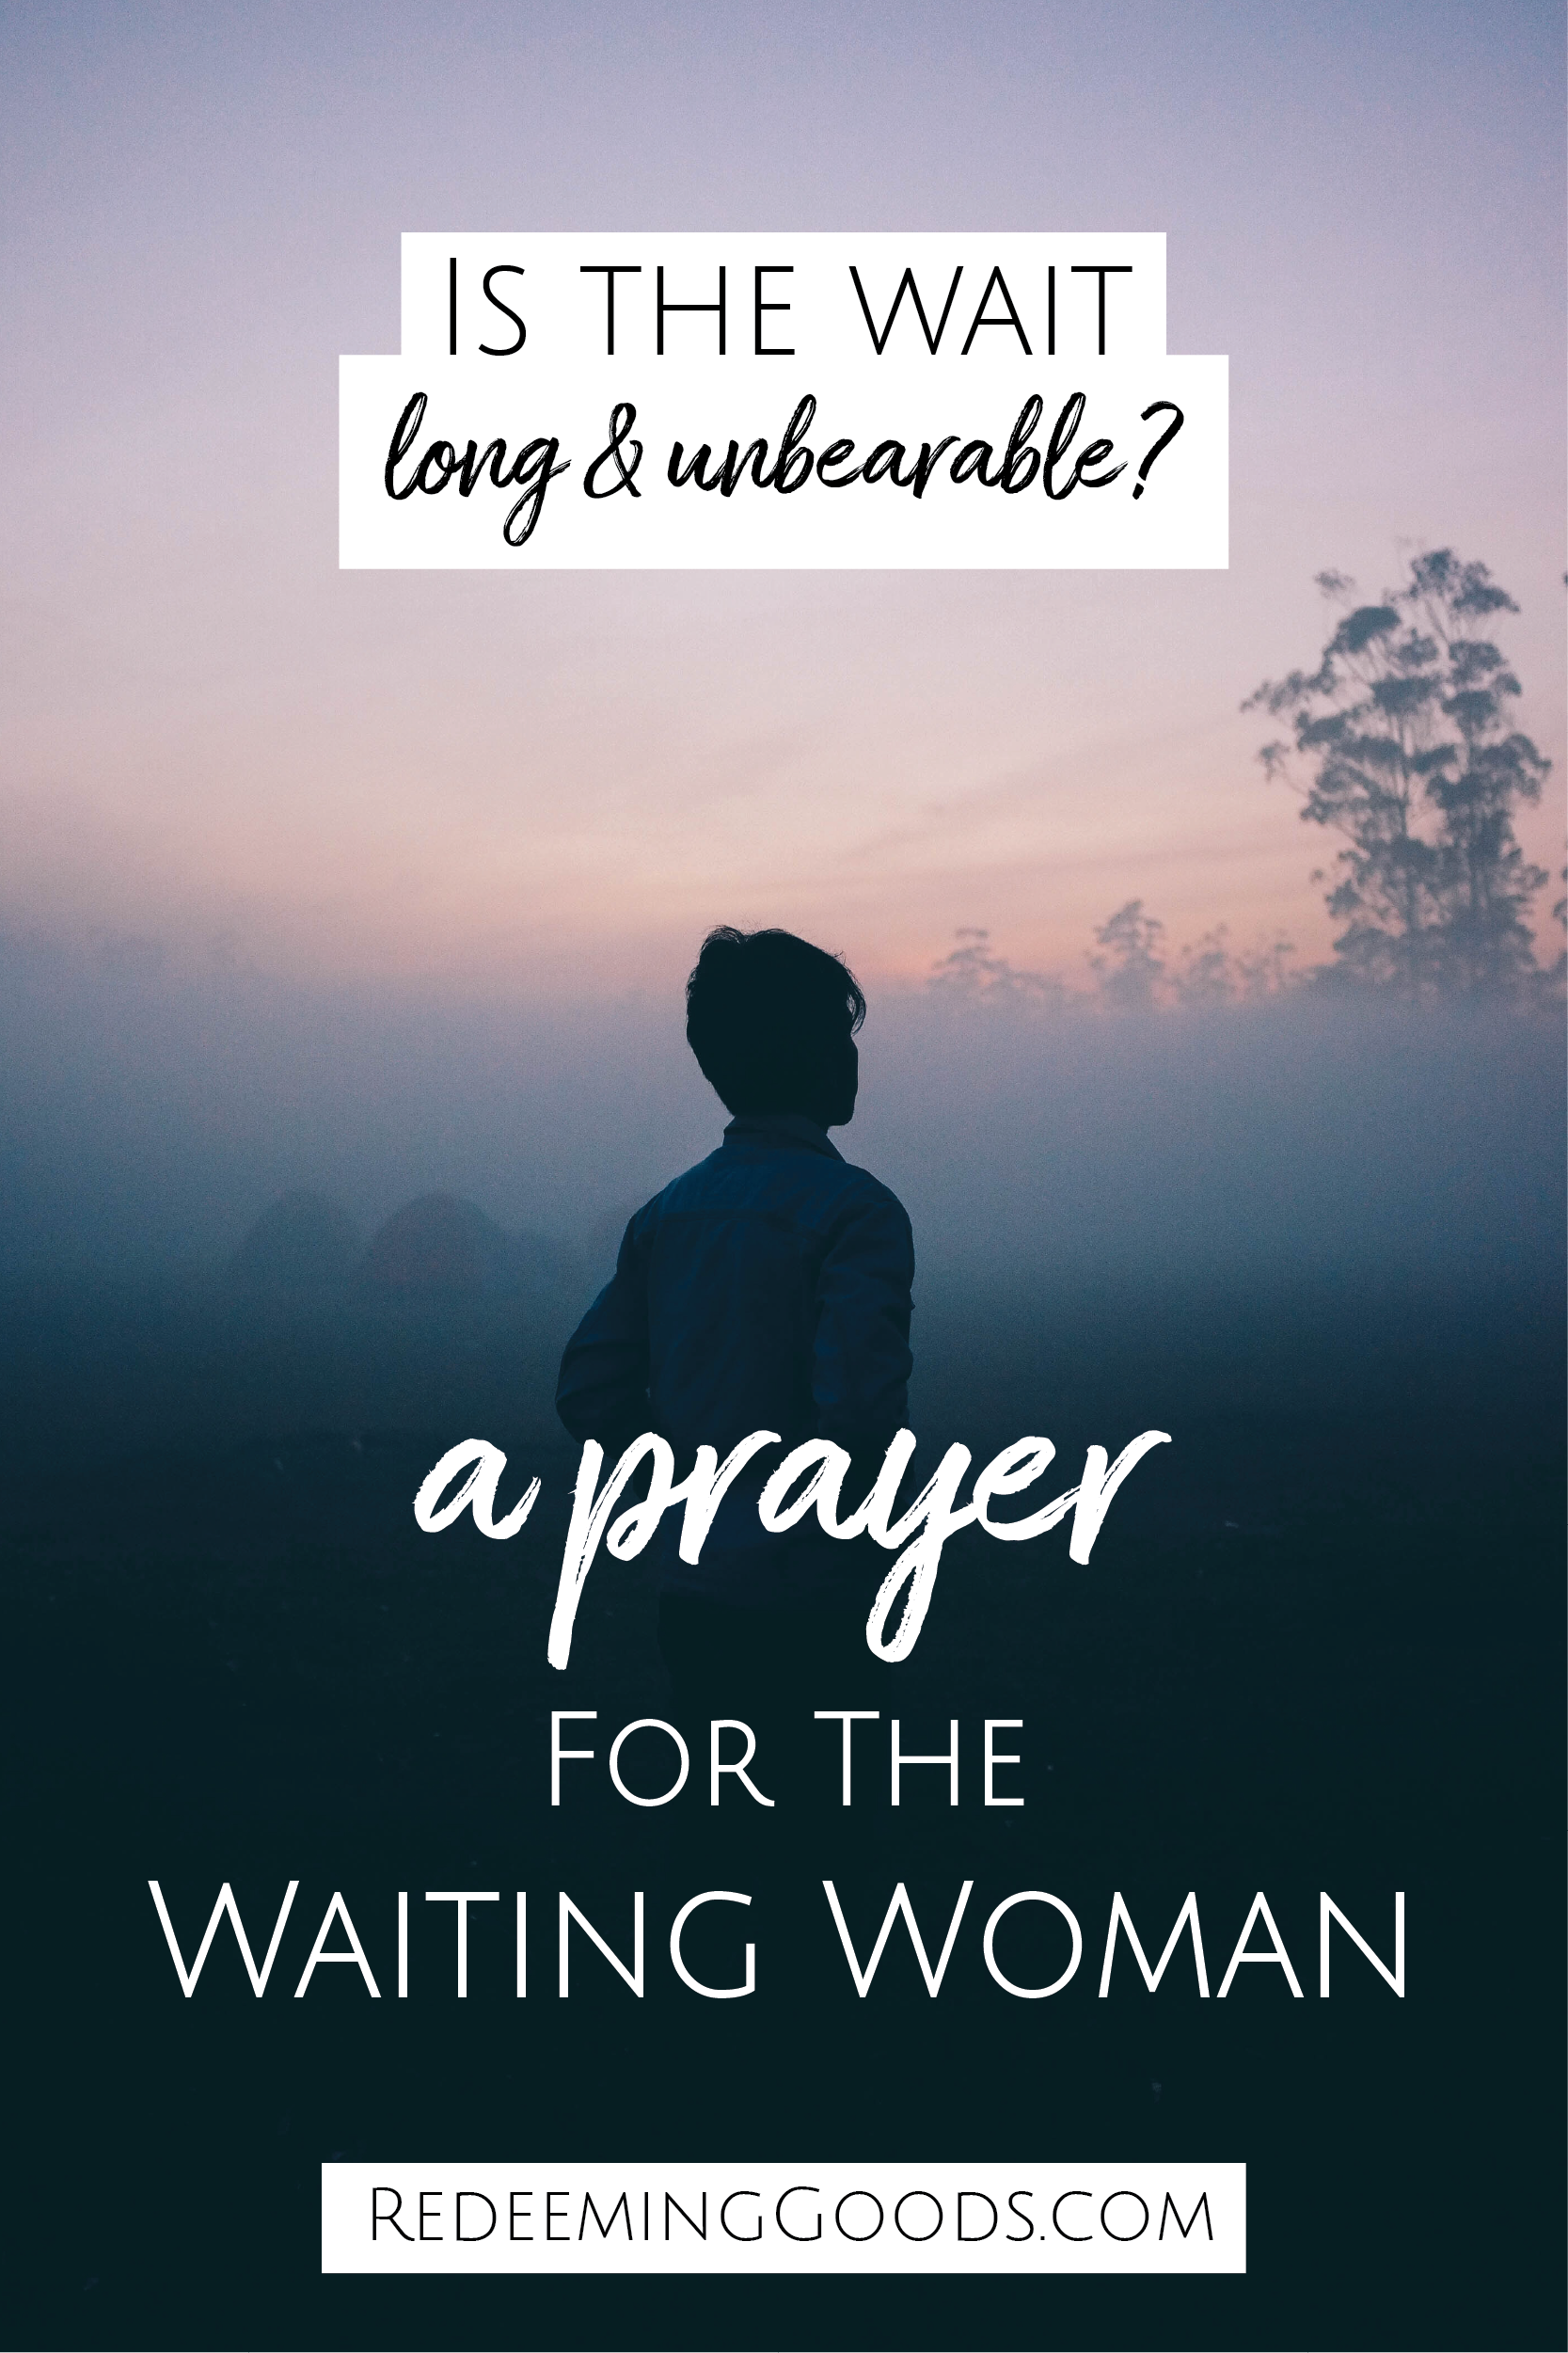 Prayer for the Waiting Woman pins_Pin 4 Redeeming Goods.png